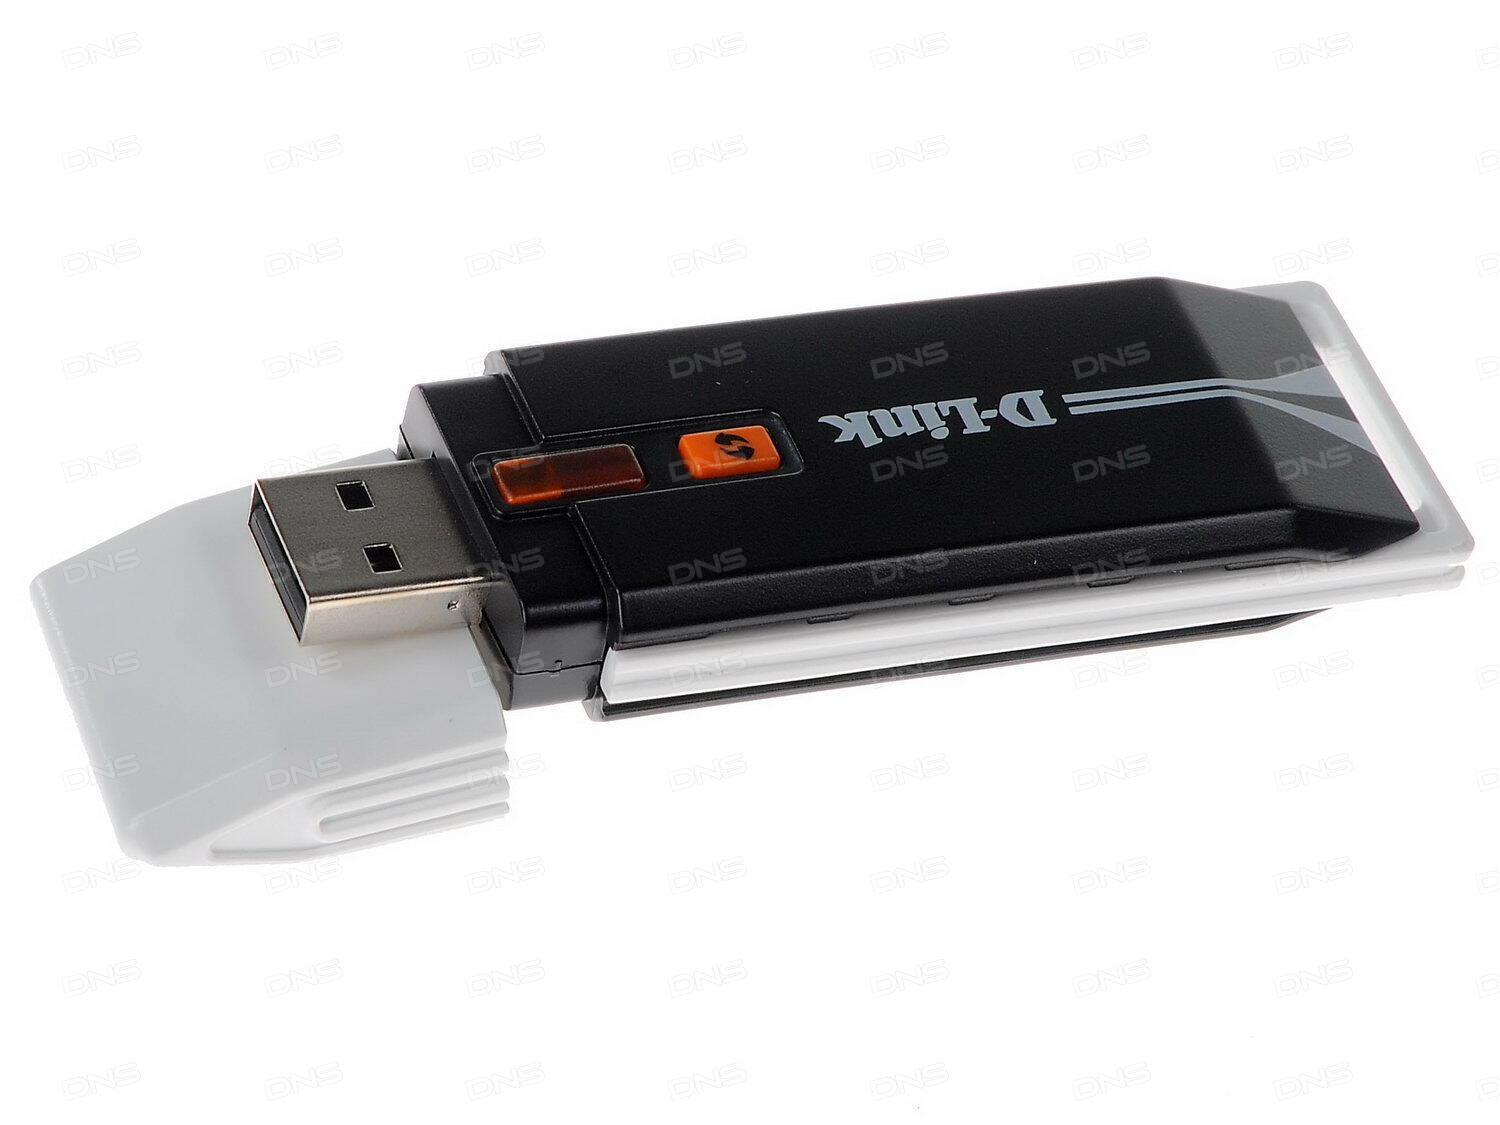 Wireless N USB Adapter - D-Link - Building Networks for People